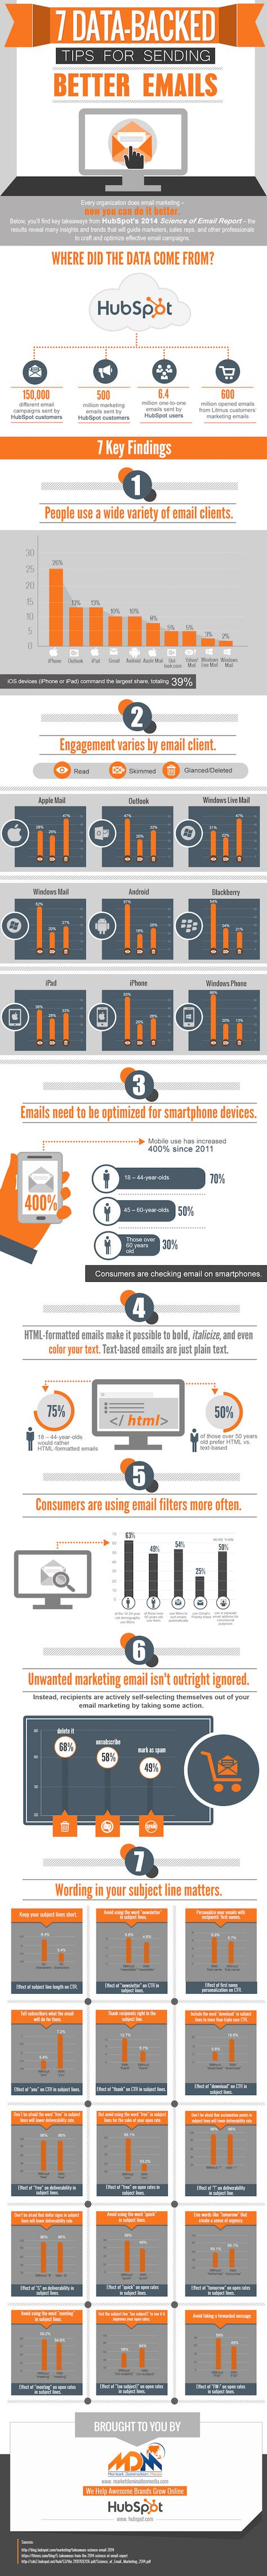 Want Better Email Conversion Rates? Try These 7 Tips. (Infographic)